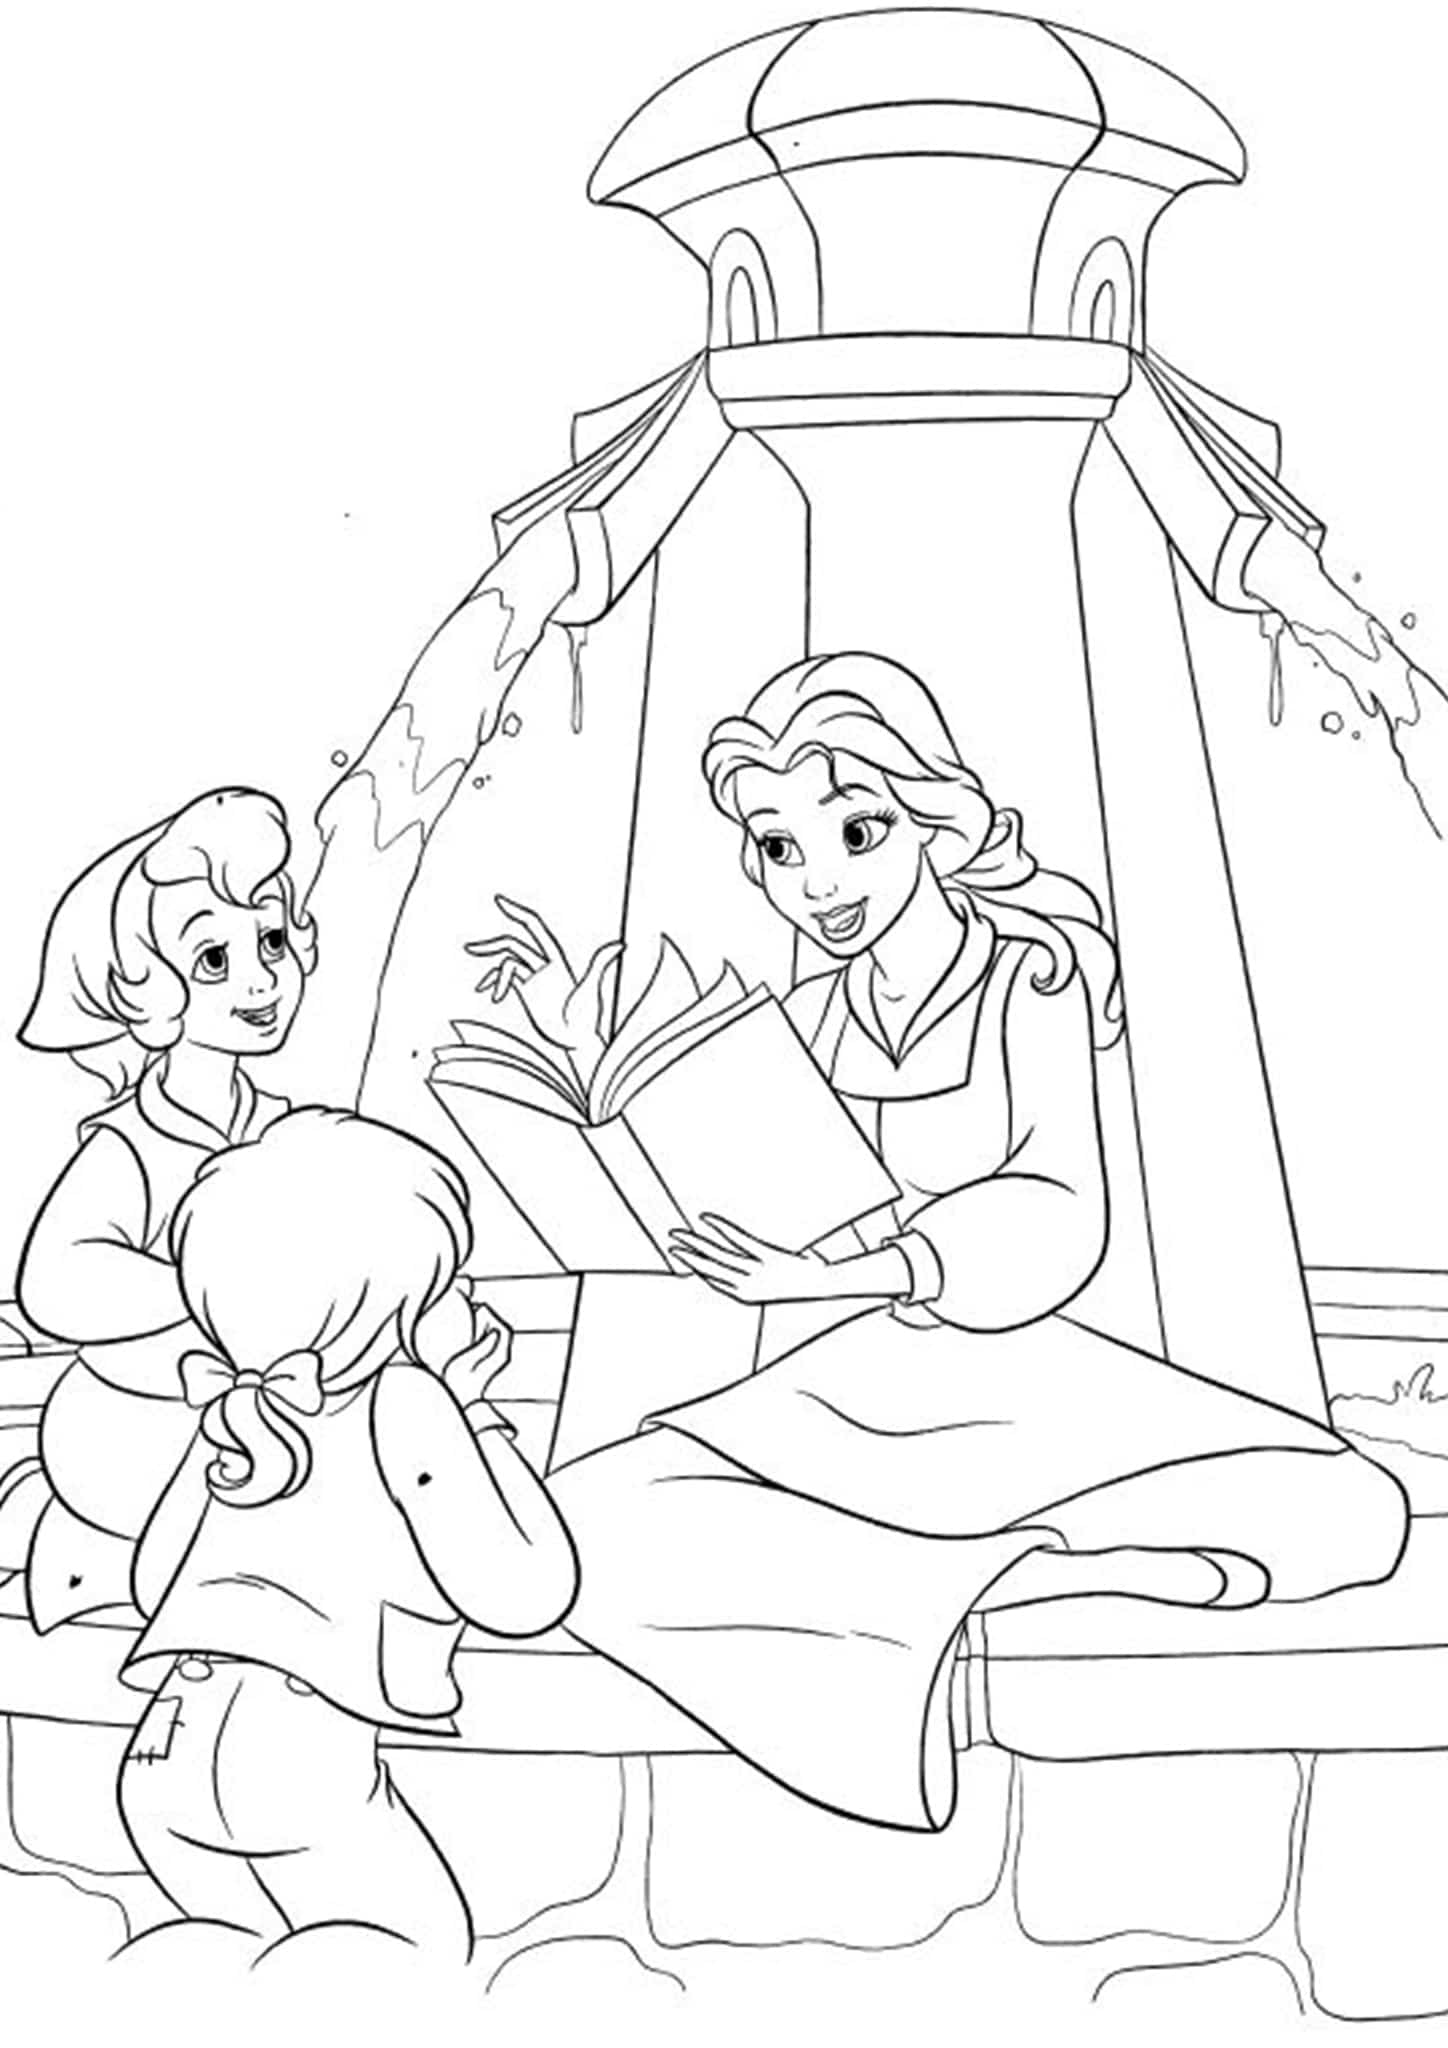 beauty and the beast colouring pages top 10 free printable beauty and the beast coloring pages beauty colouring the beast pages and